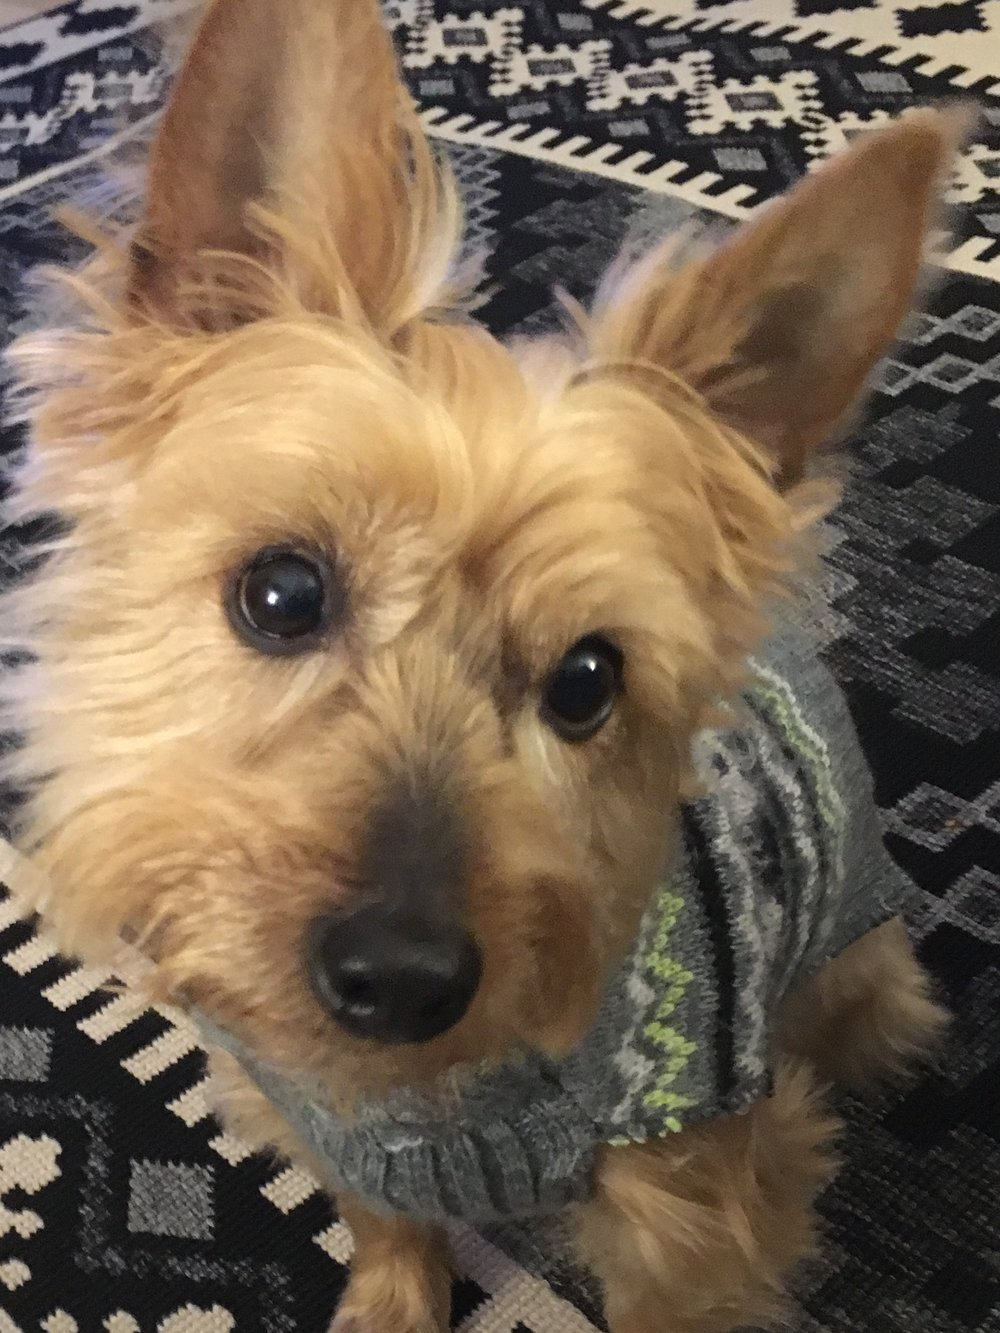 Austin Jackson Poobalah, our super protective Yorkie,, seems never to be able to get out of his winter clothes with this endless winter.